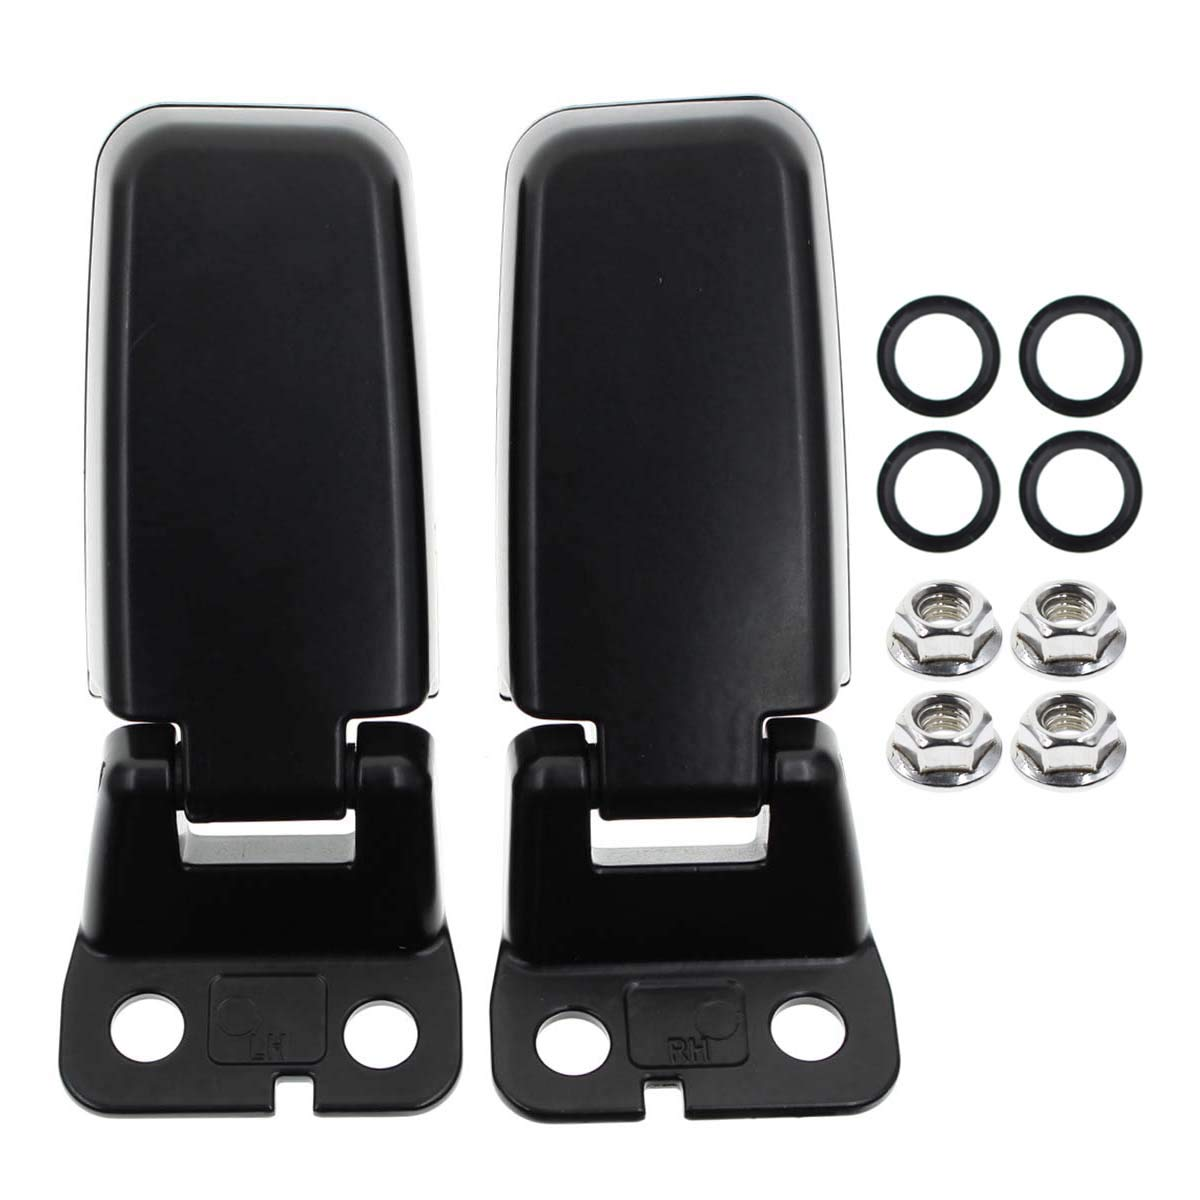 MOTOALL 1 Pair Rear Tailgate Window Glass Hinge 90320-7S000 90321-7S000 Left Right for 2004-2010 Infinity QX56 2005-2015 Nissan Armada by MOTOALL